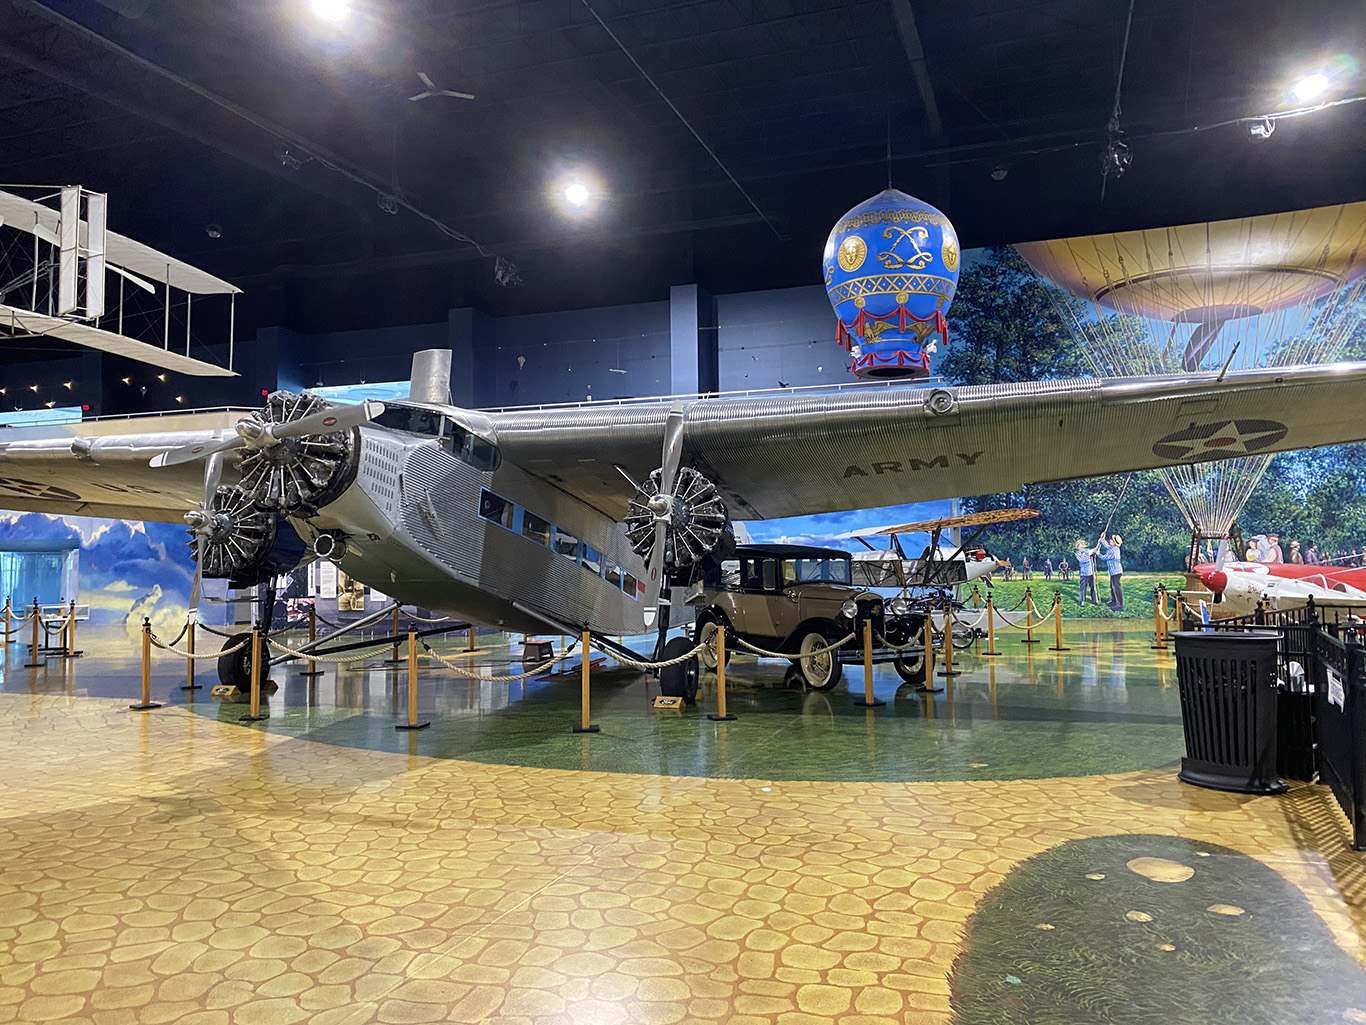 The Ford Tri-Motor image